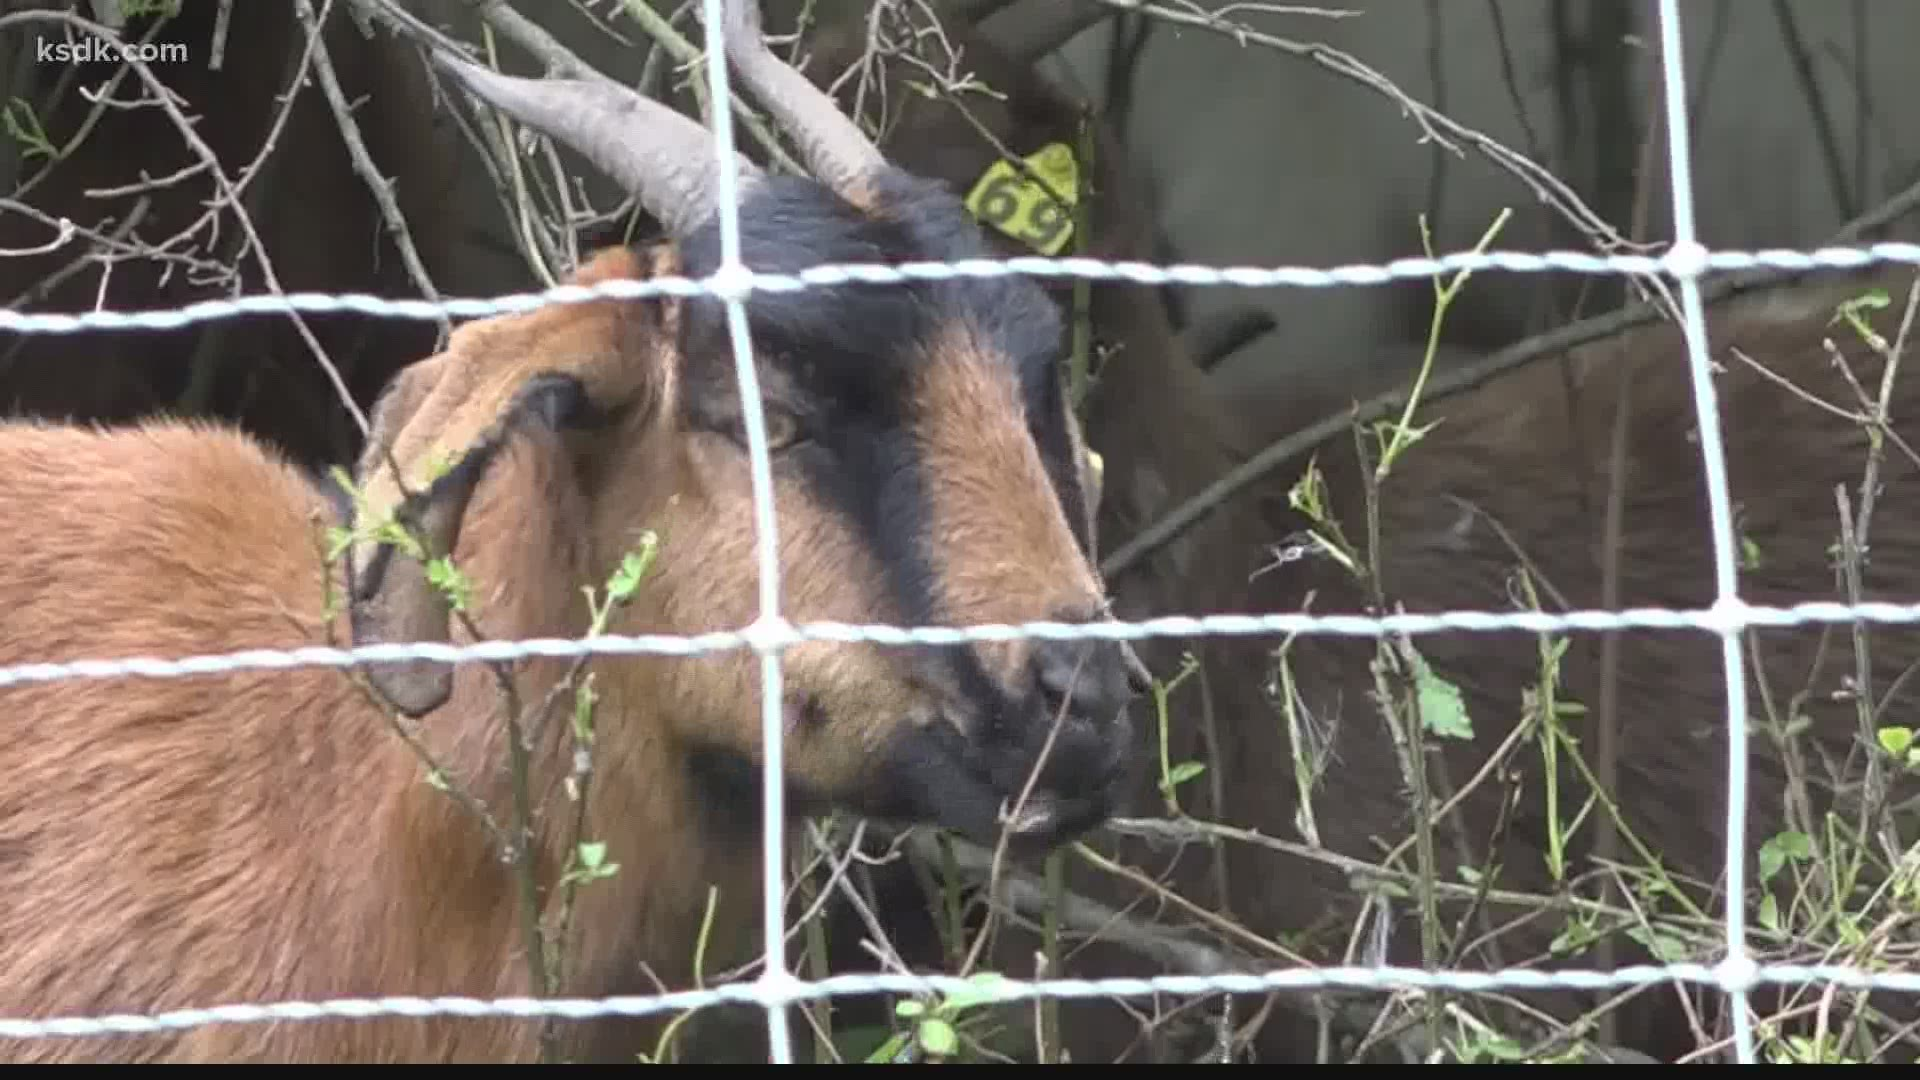 These goats will help with your yard work | ksdk.com